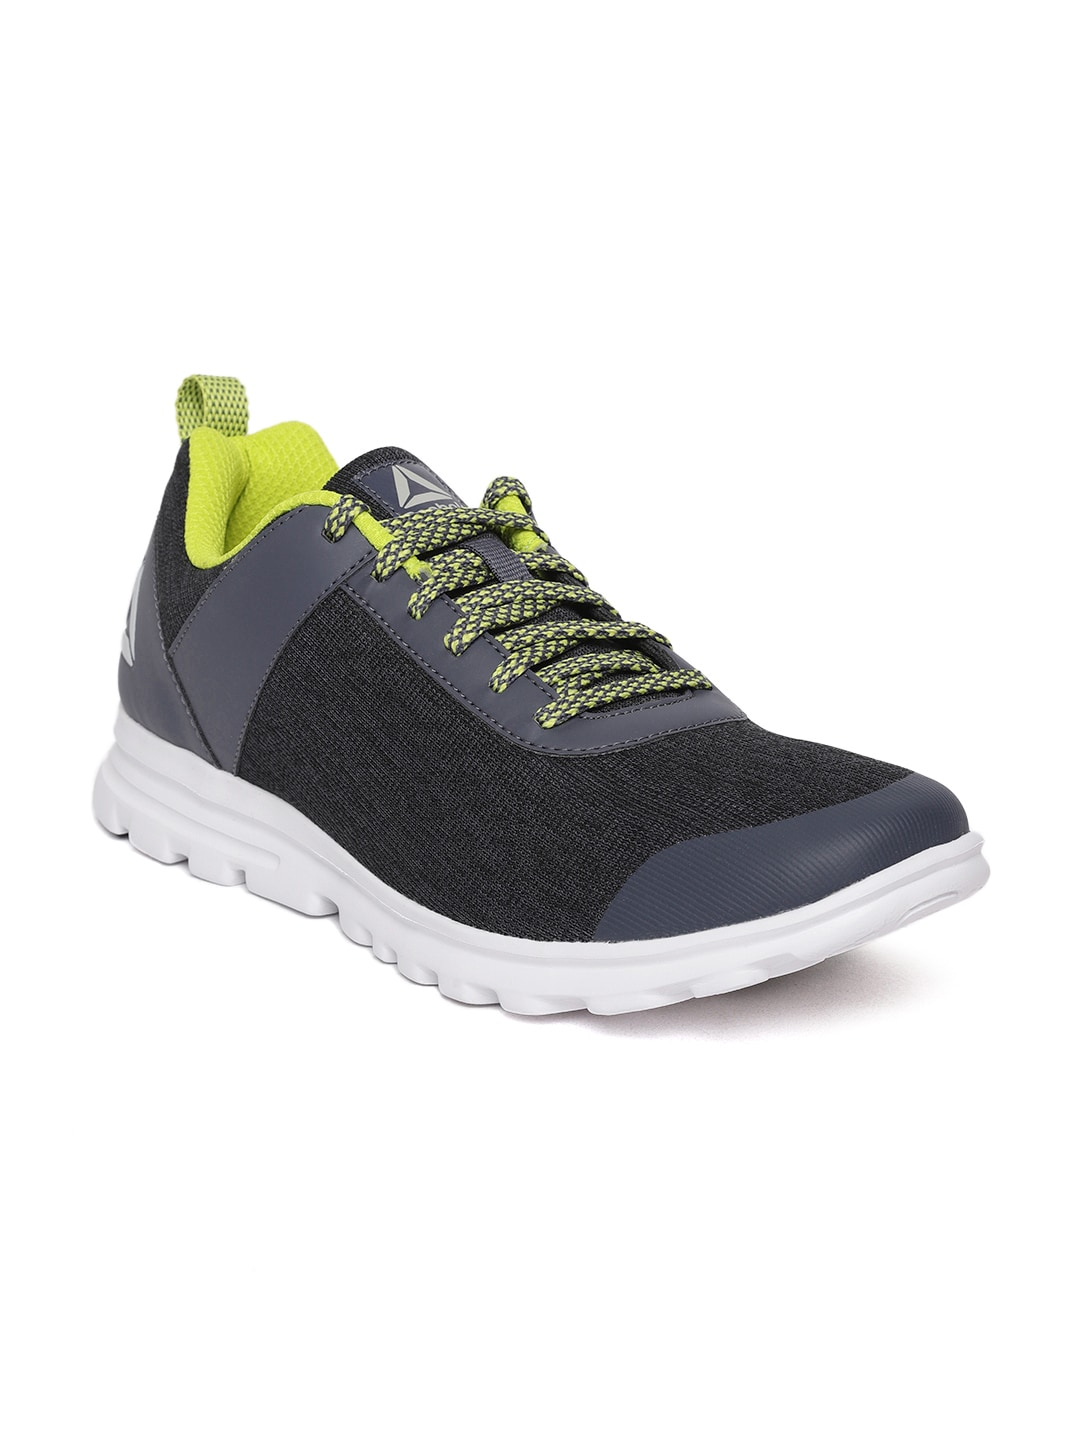 3e07fff85 Reebok Run Shoes - Buy Reebok Run Shoes online in India